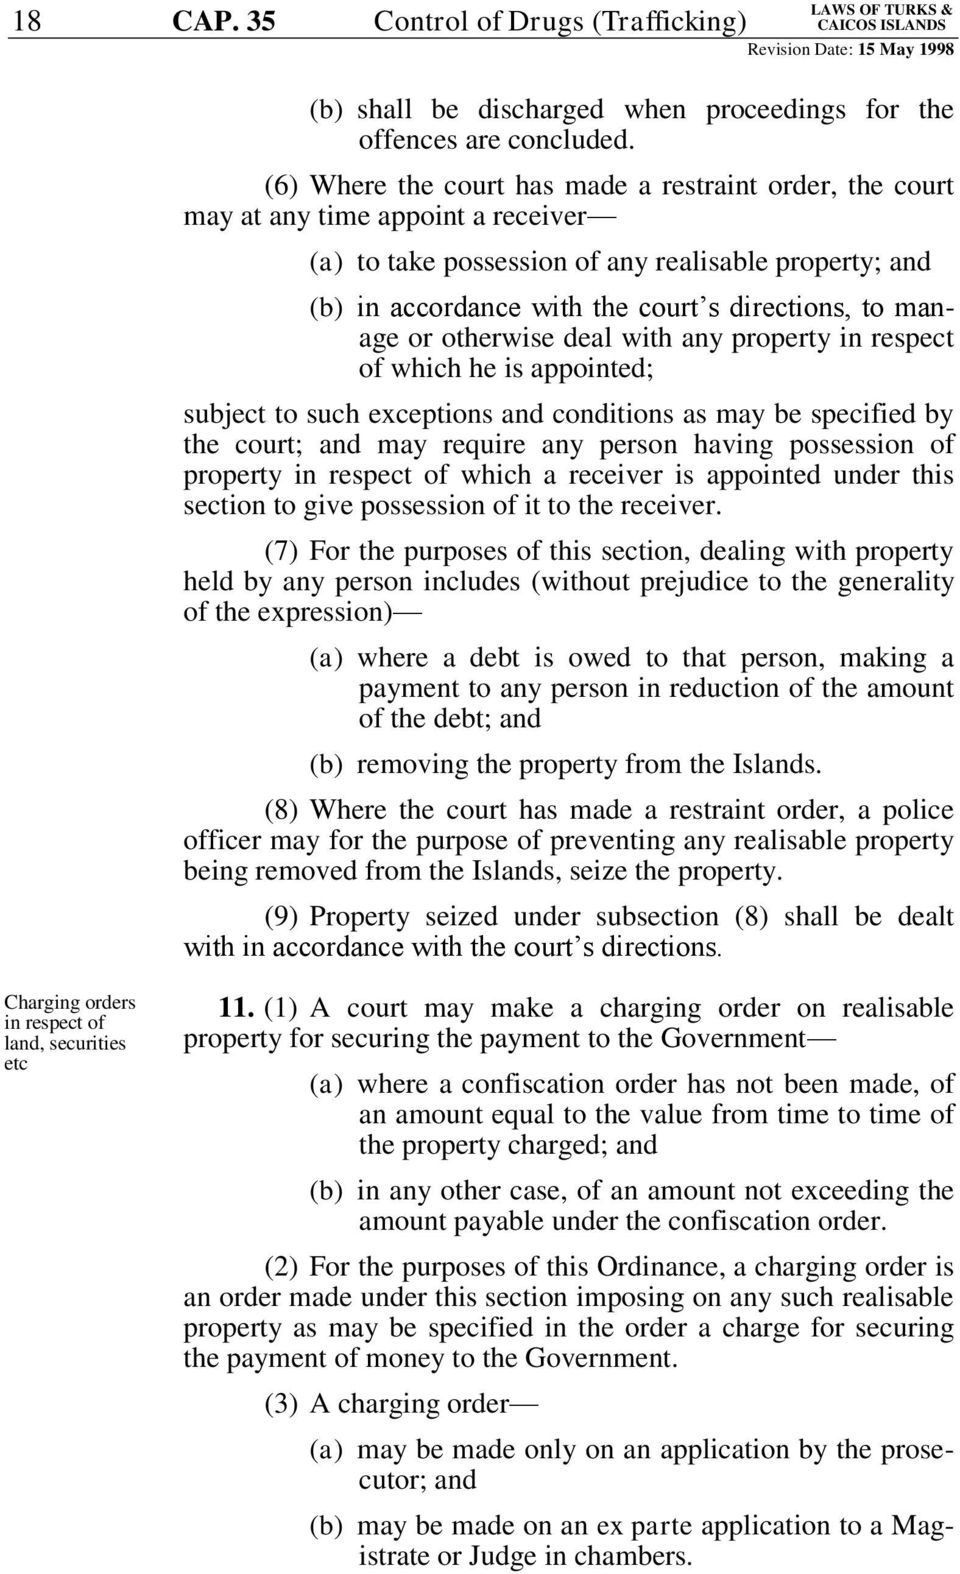 manage or otherwise deal with any property in respect of which he is appointed; subject to such exceptions and conditions as may be specified by the court; and may require any person having